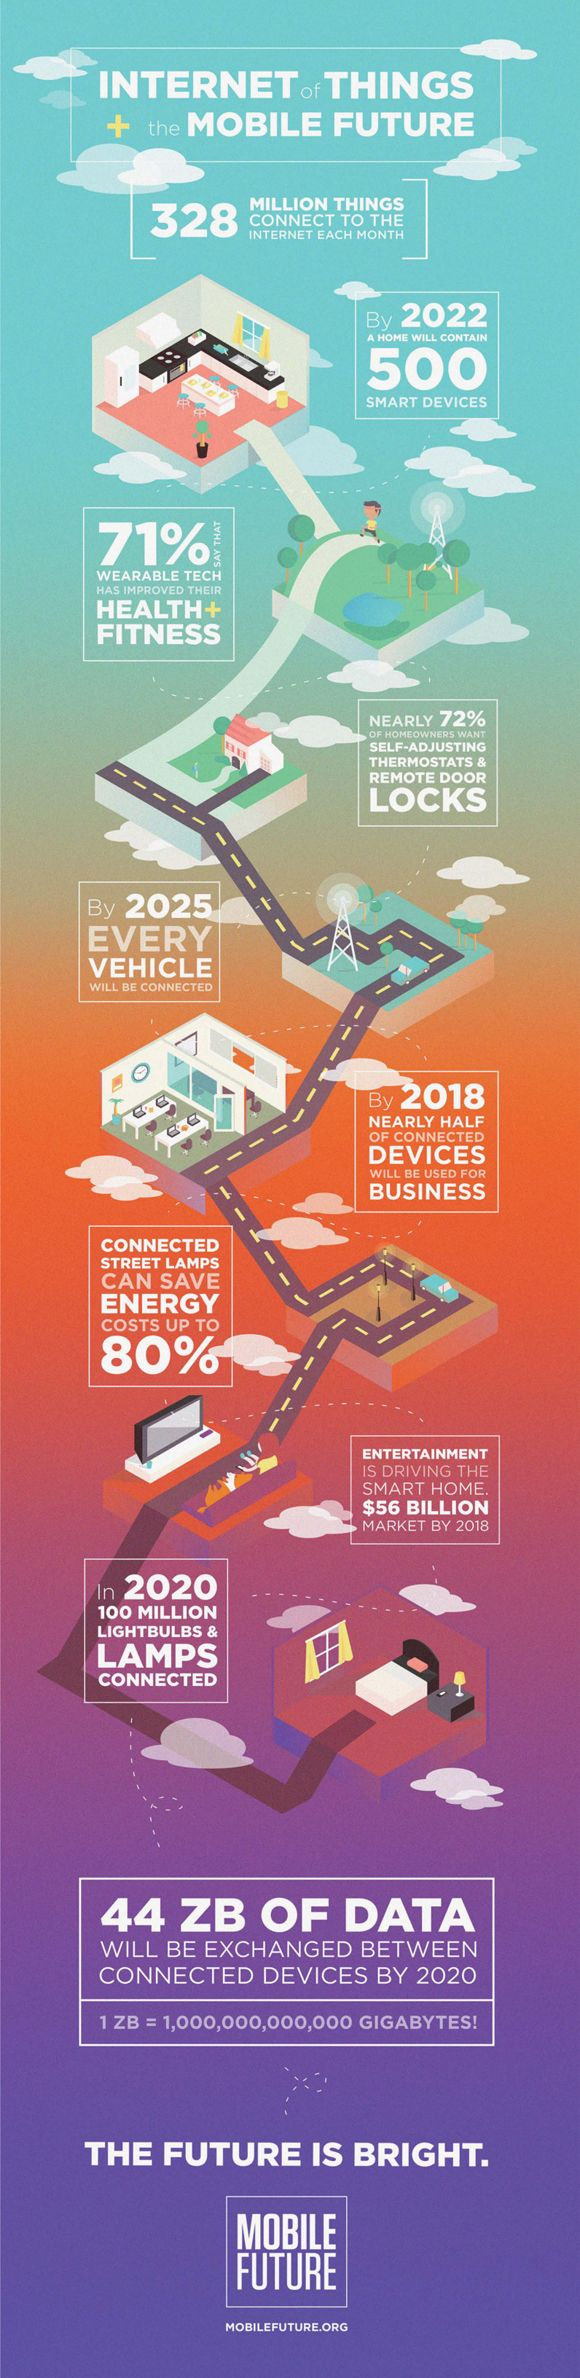 The internet of things and our mobile future #IOT #infographic #mobile